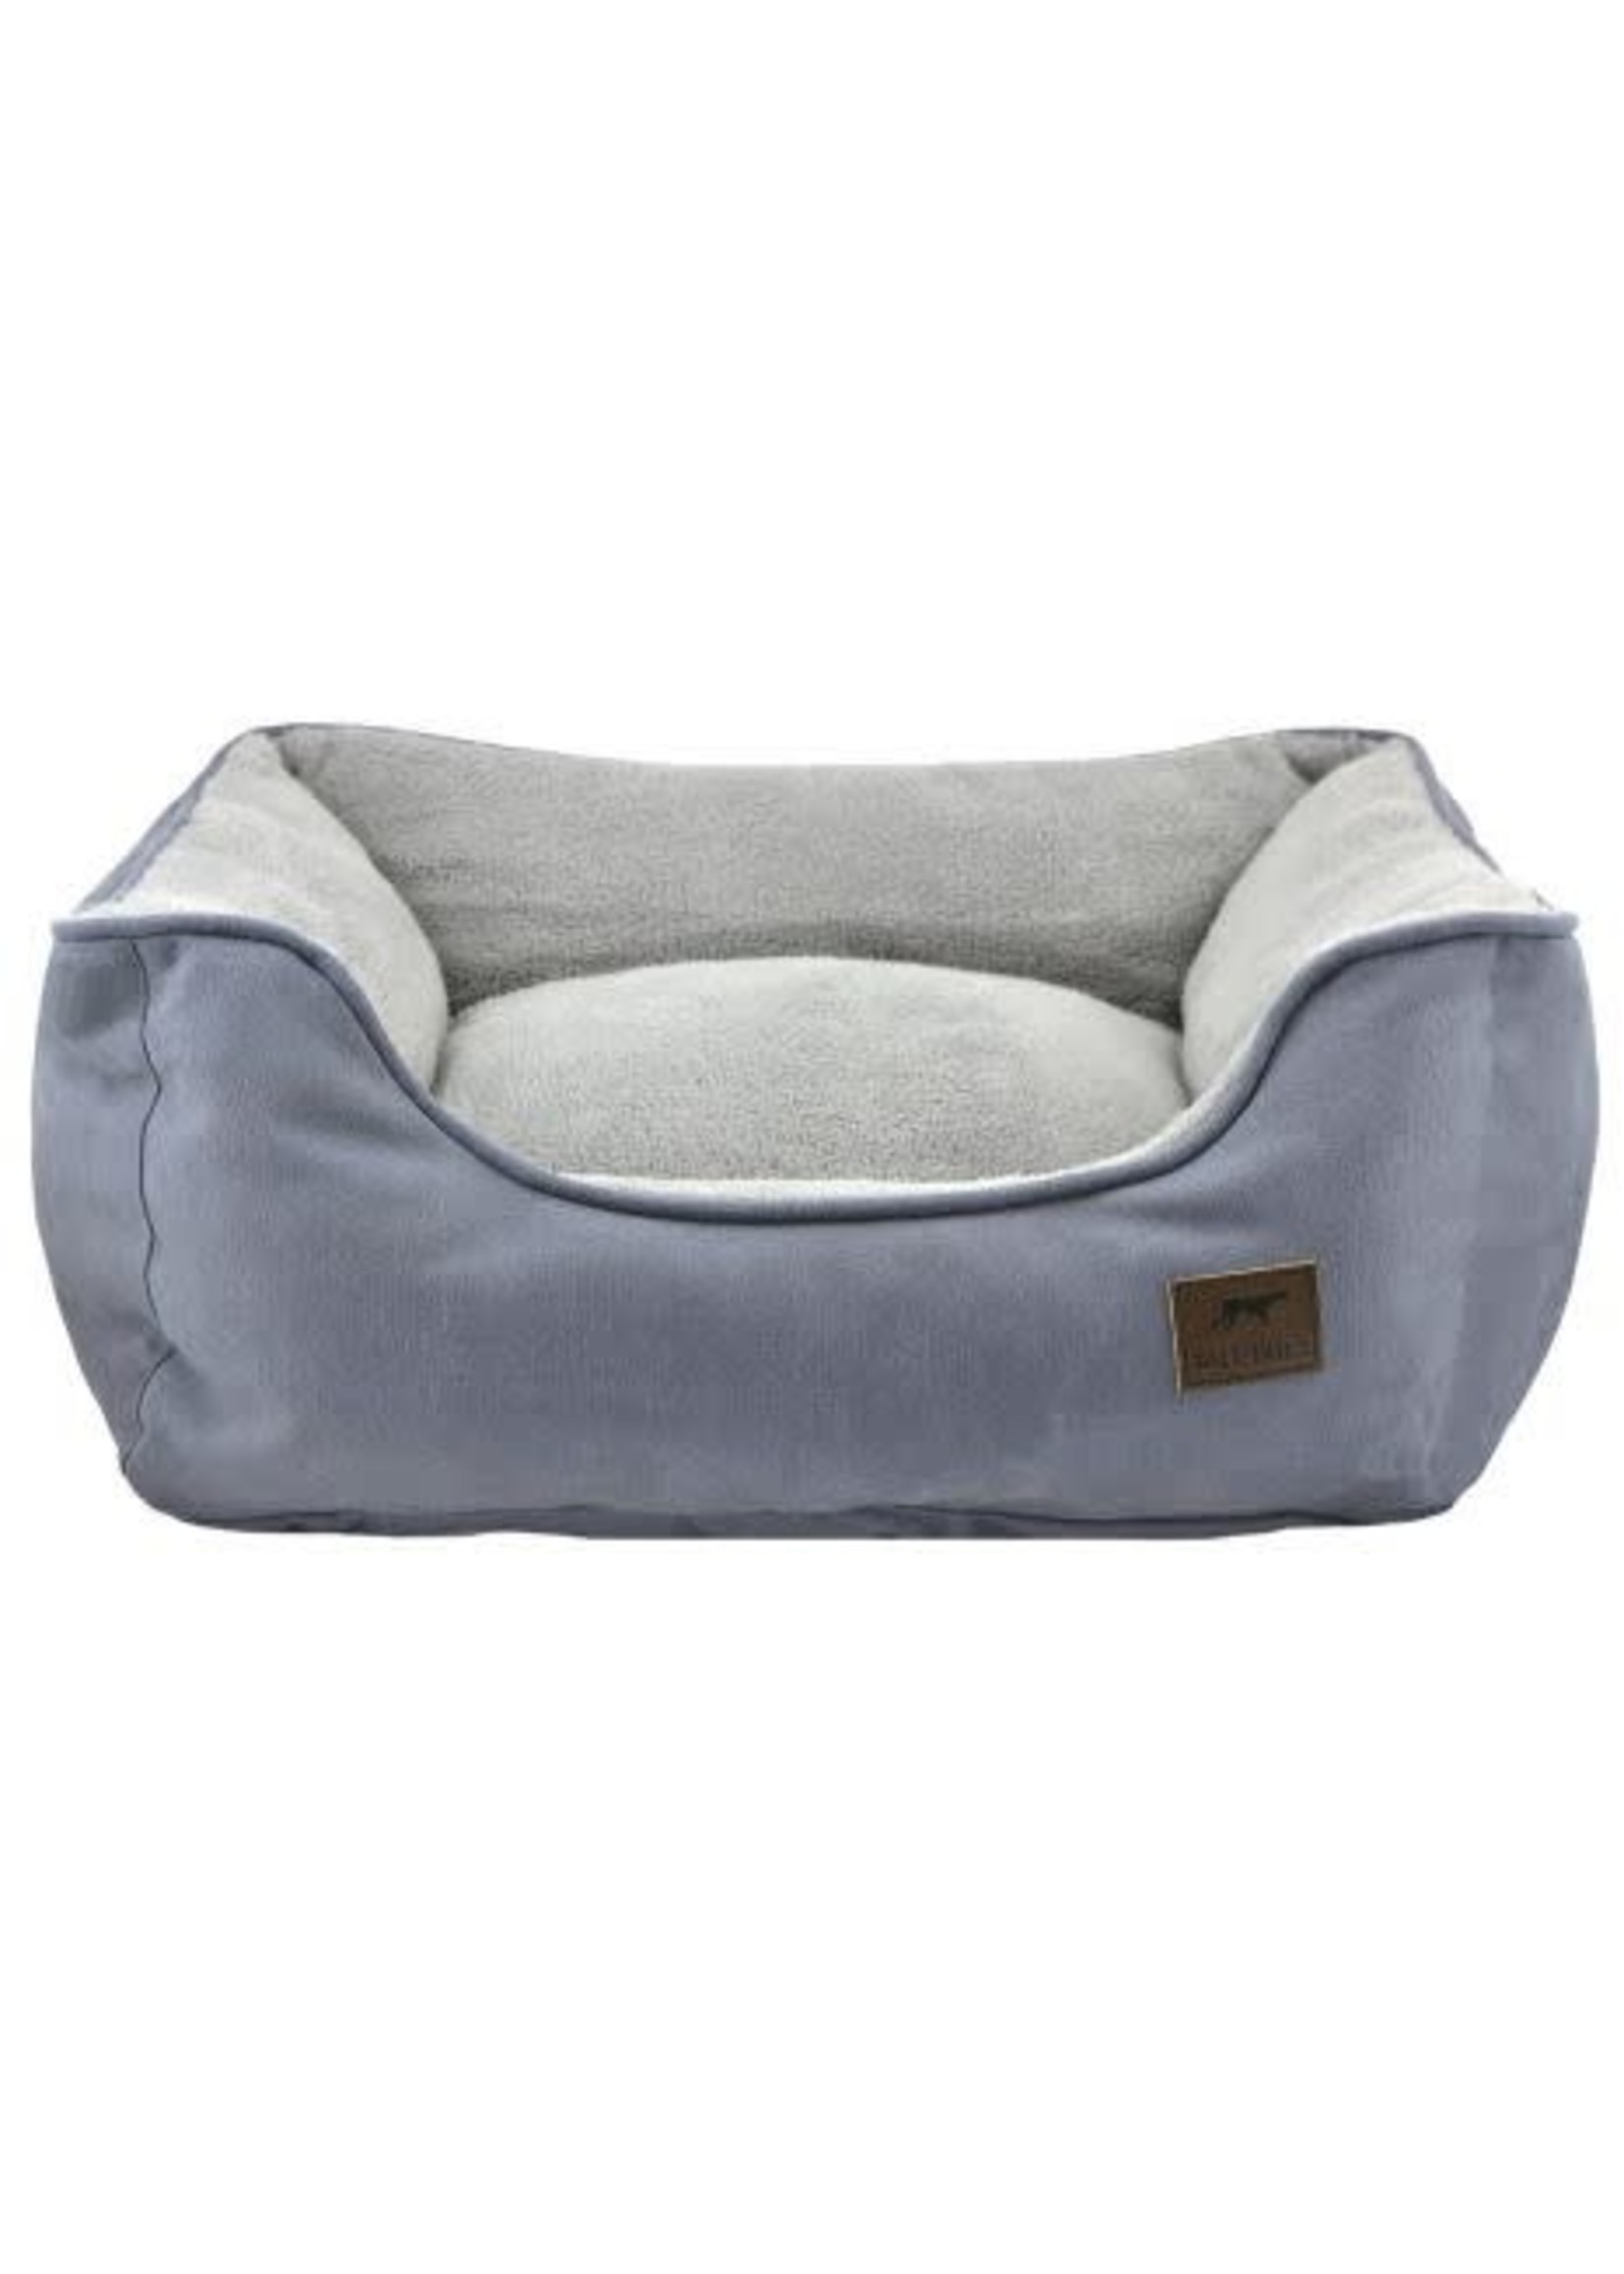 Tall Tails Tall Tails Bolster Bed Charcoal M